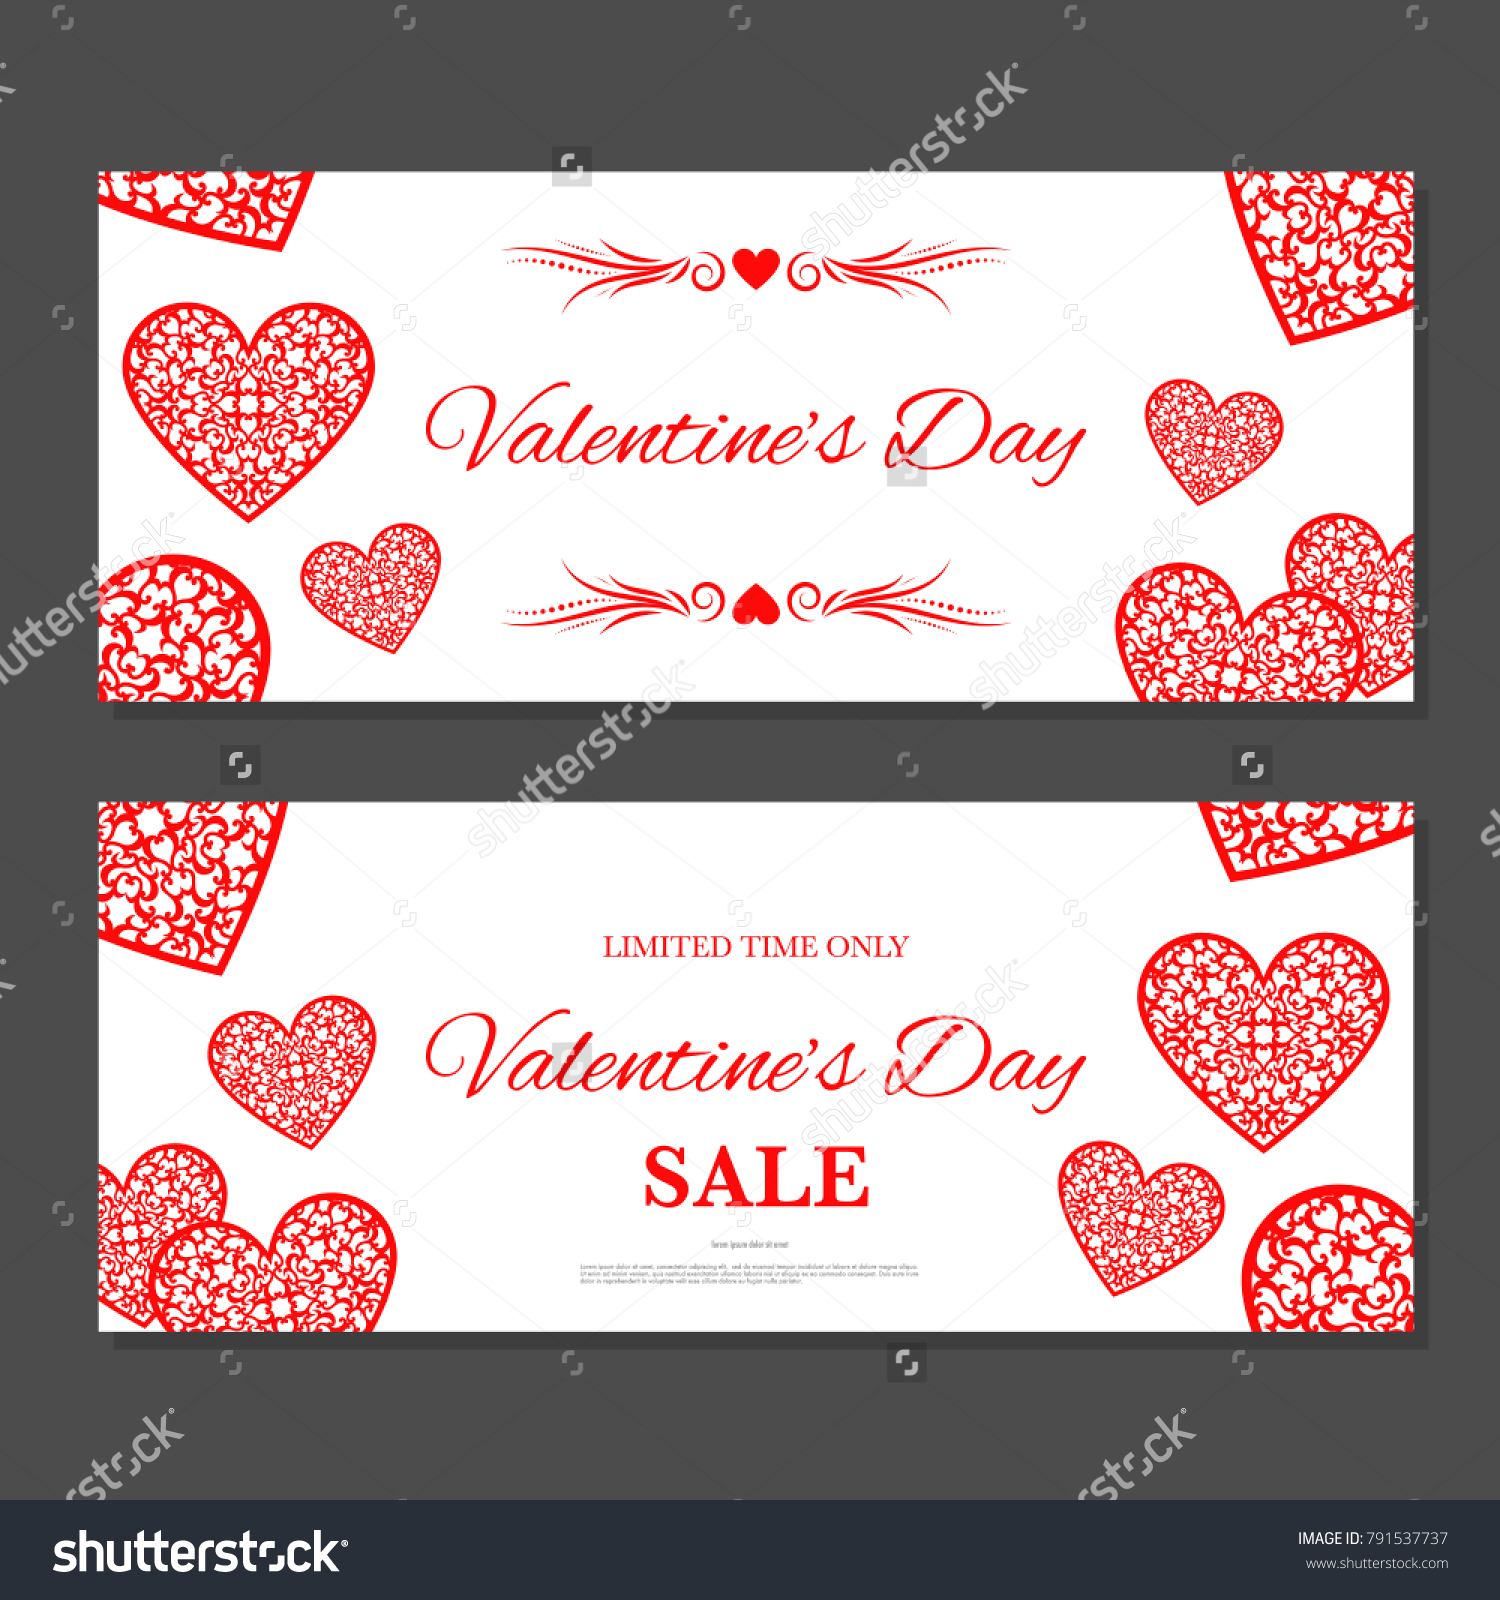 Valentineu0027s Day Gift Coupon. Gift Voucher Template With Red Hearts. Two  Side Of Discount  Coupon Voucher Template